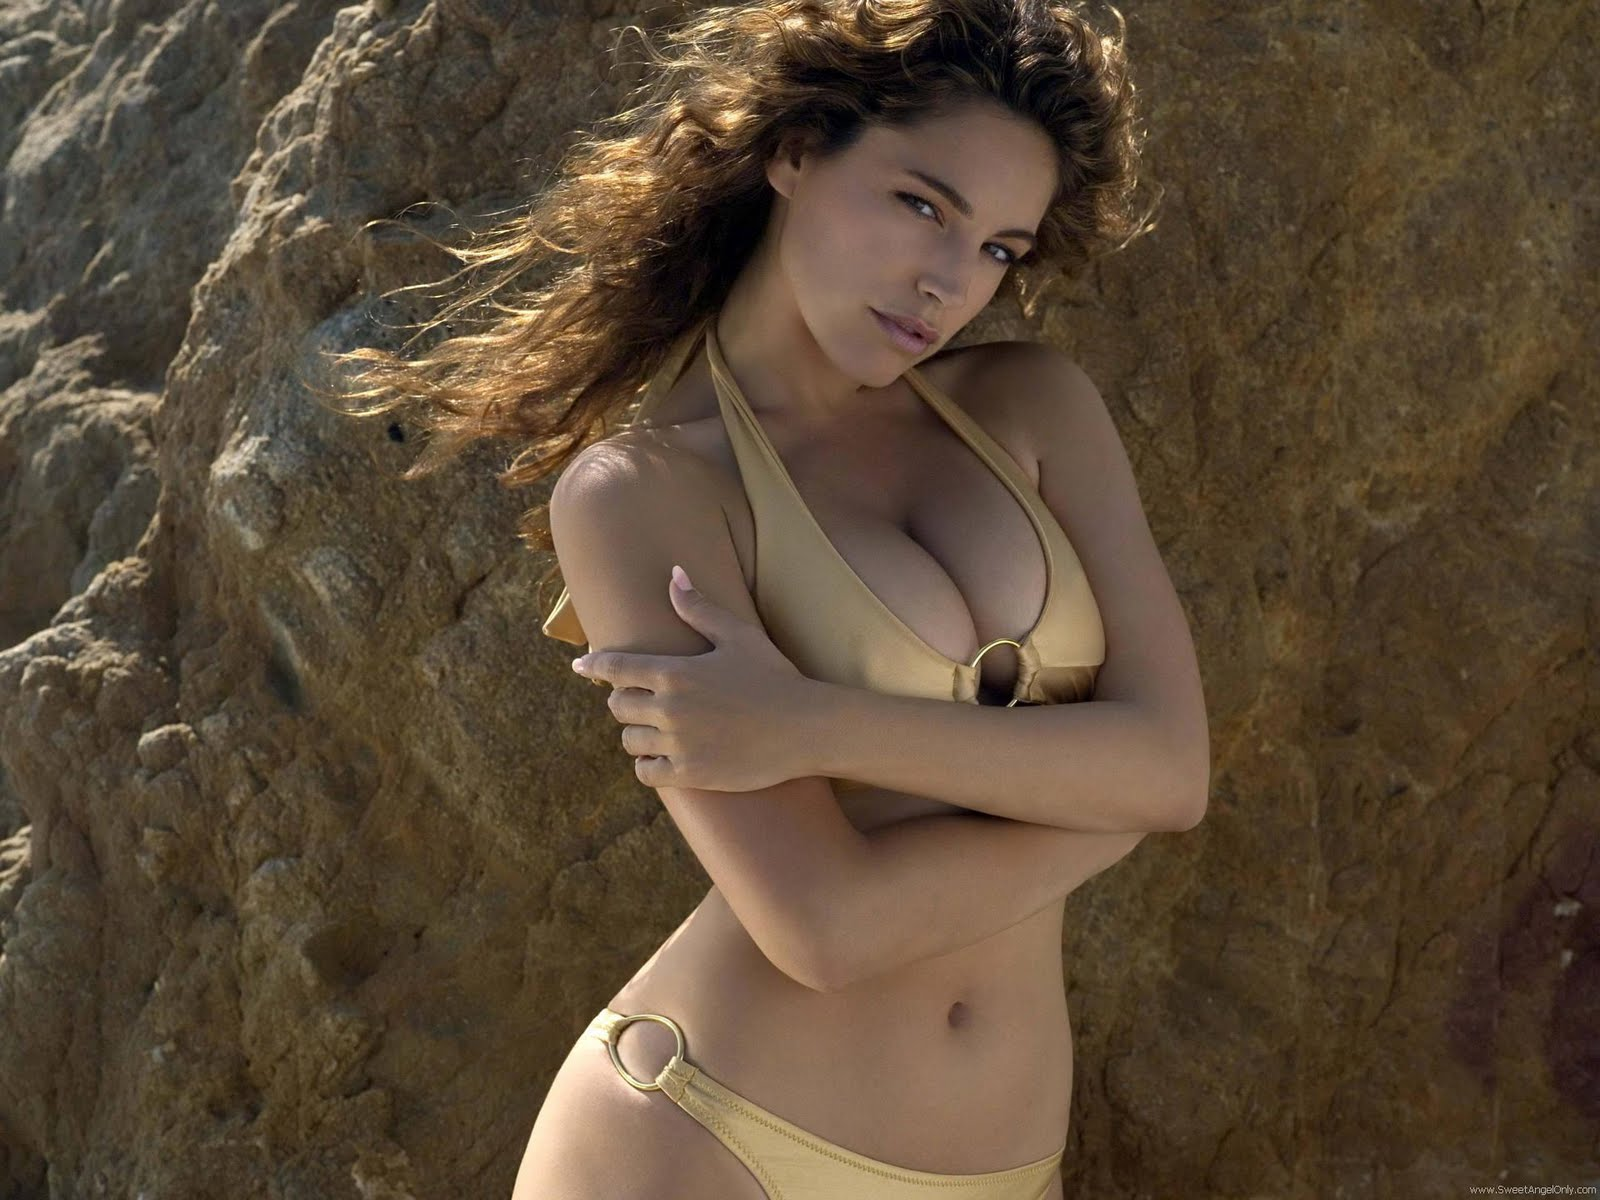 http://1.bp.blogspot.com/-T5-Cys5HRXg/TeEZ0n2P_XI/AAAAAAAAFvI/xGjXIgHBvUE/s1600/kelly_brook_a_HD_Wallpaper_156.jpg